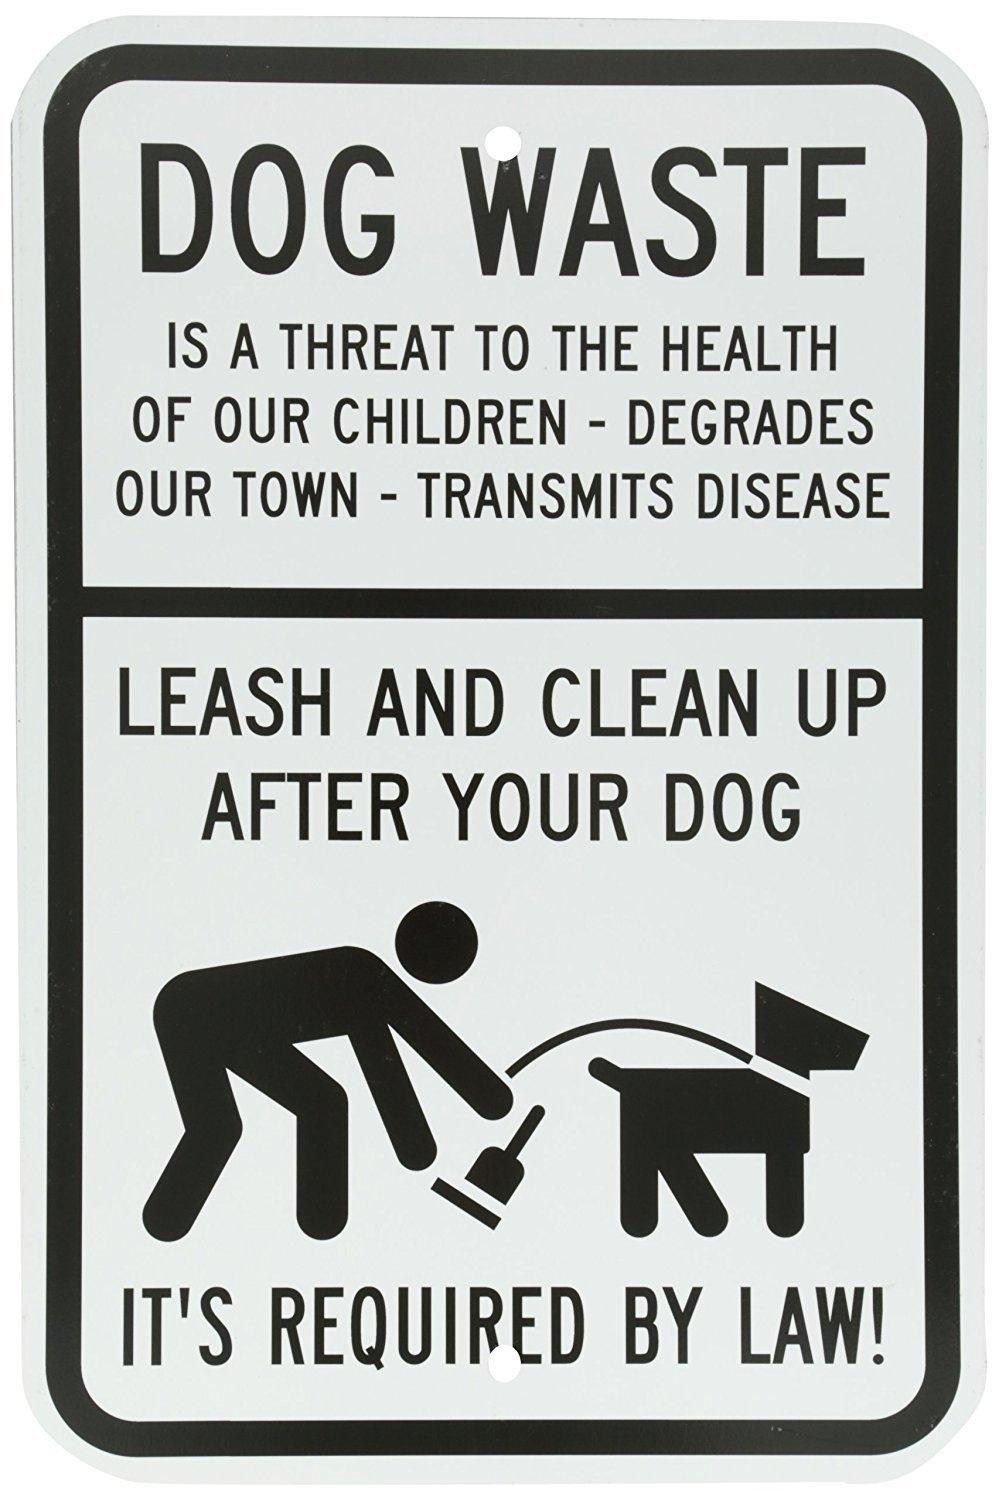 Indoor and Outdoor Use UV Protected Dog Waste Waterproof Self Adhesive Vinyl Sticker 18 high x 12 wide Leash and Clean Up After Your Dog with Graphic Rust Free Black on White